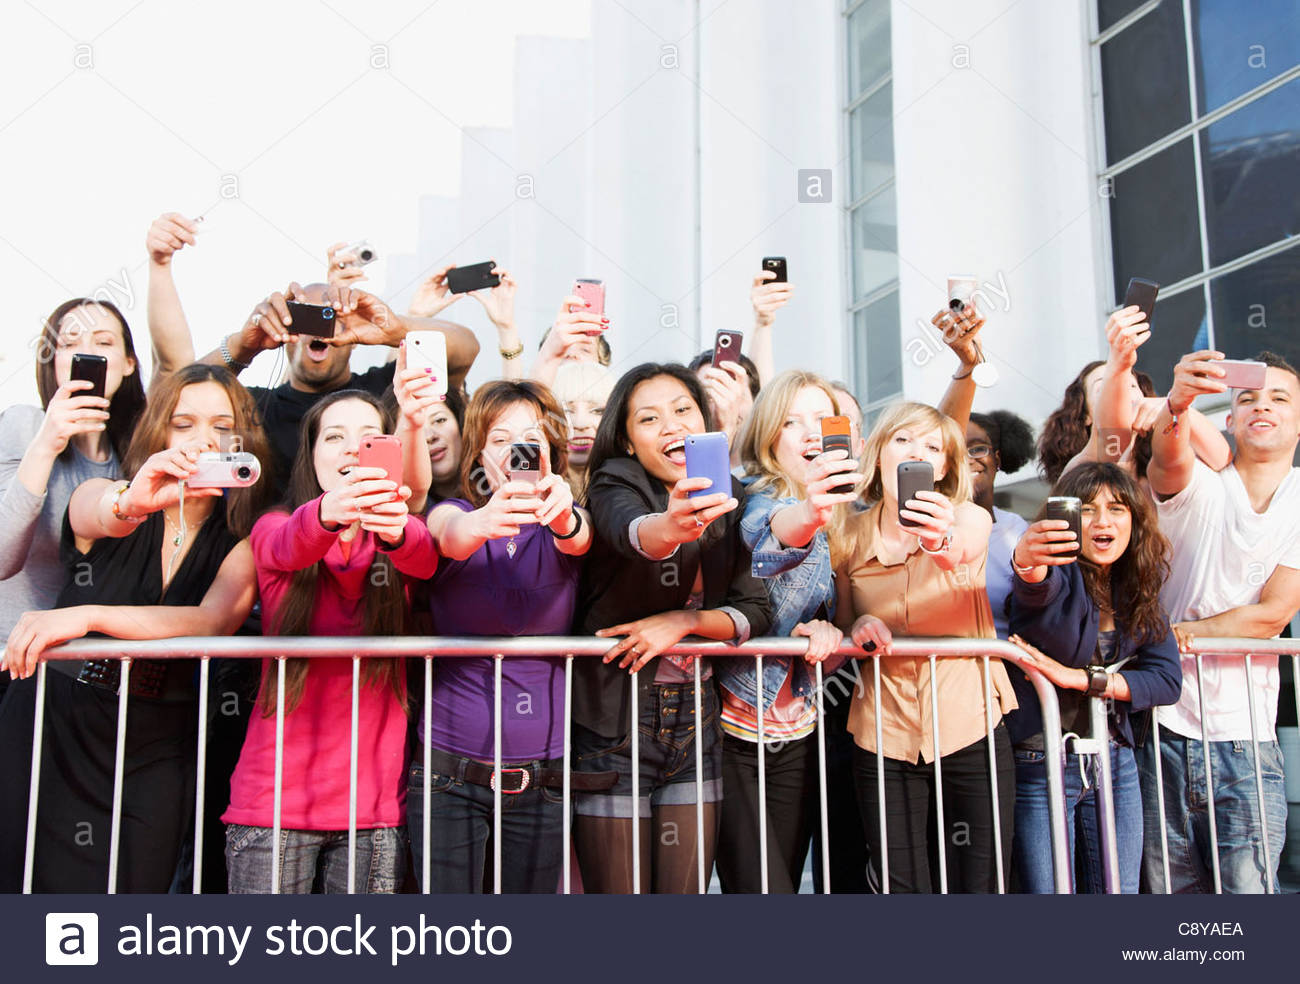 Fans taking pictures with cell phone behind barrier stock photo - Fans Taking Pictures With Cell Phones Behind Barrier